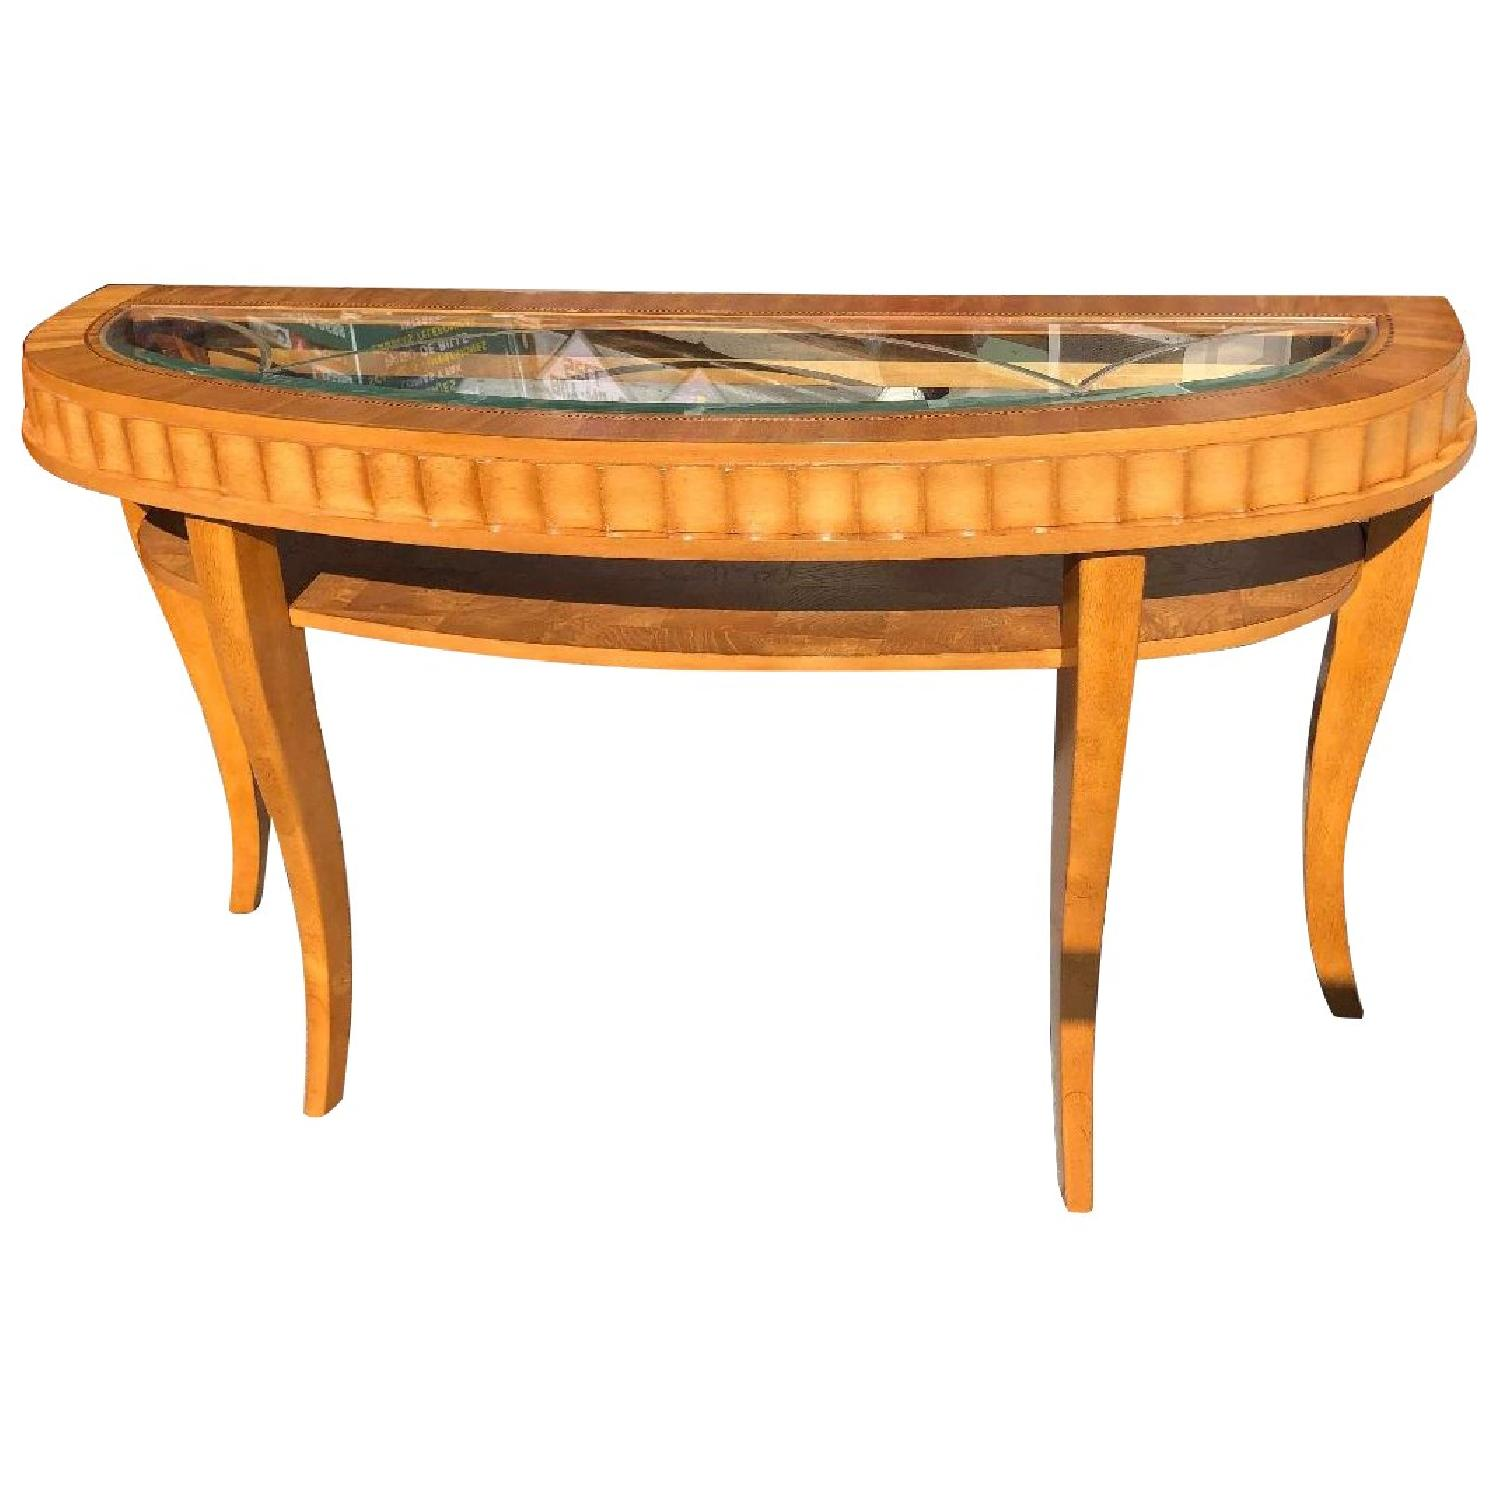 Inlaid Wooden Console Table w/ Engraved Glass &Shelf - image-0